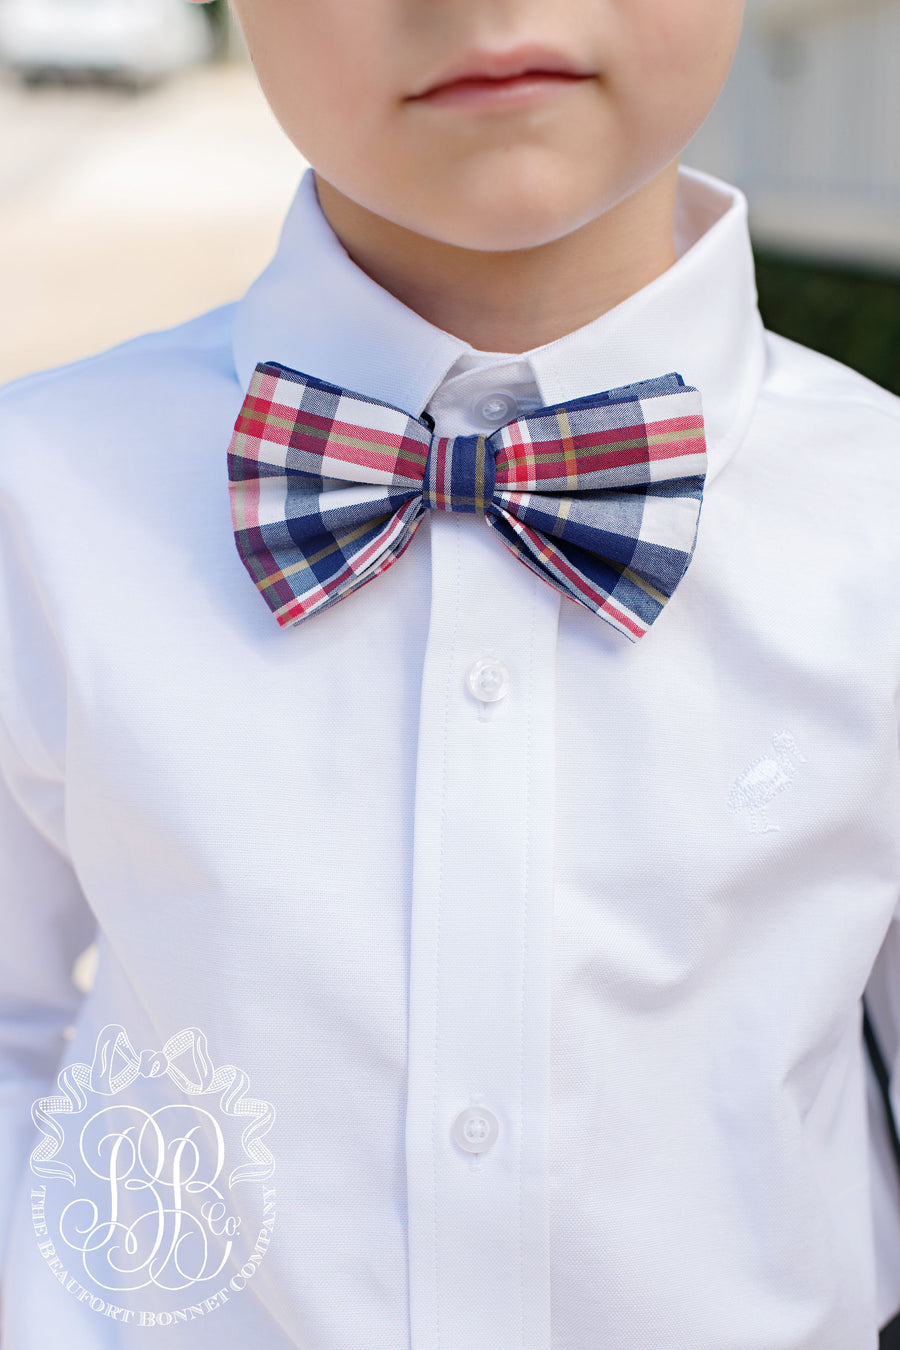 Baylor Bow Tie - Planters Inn Plaid